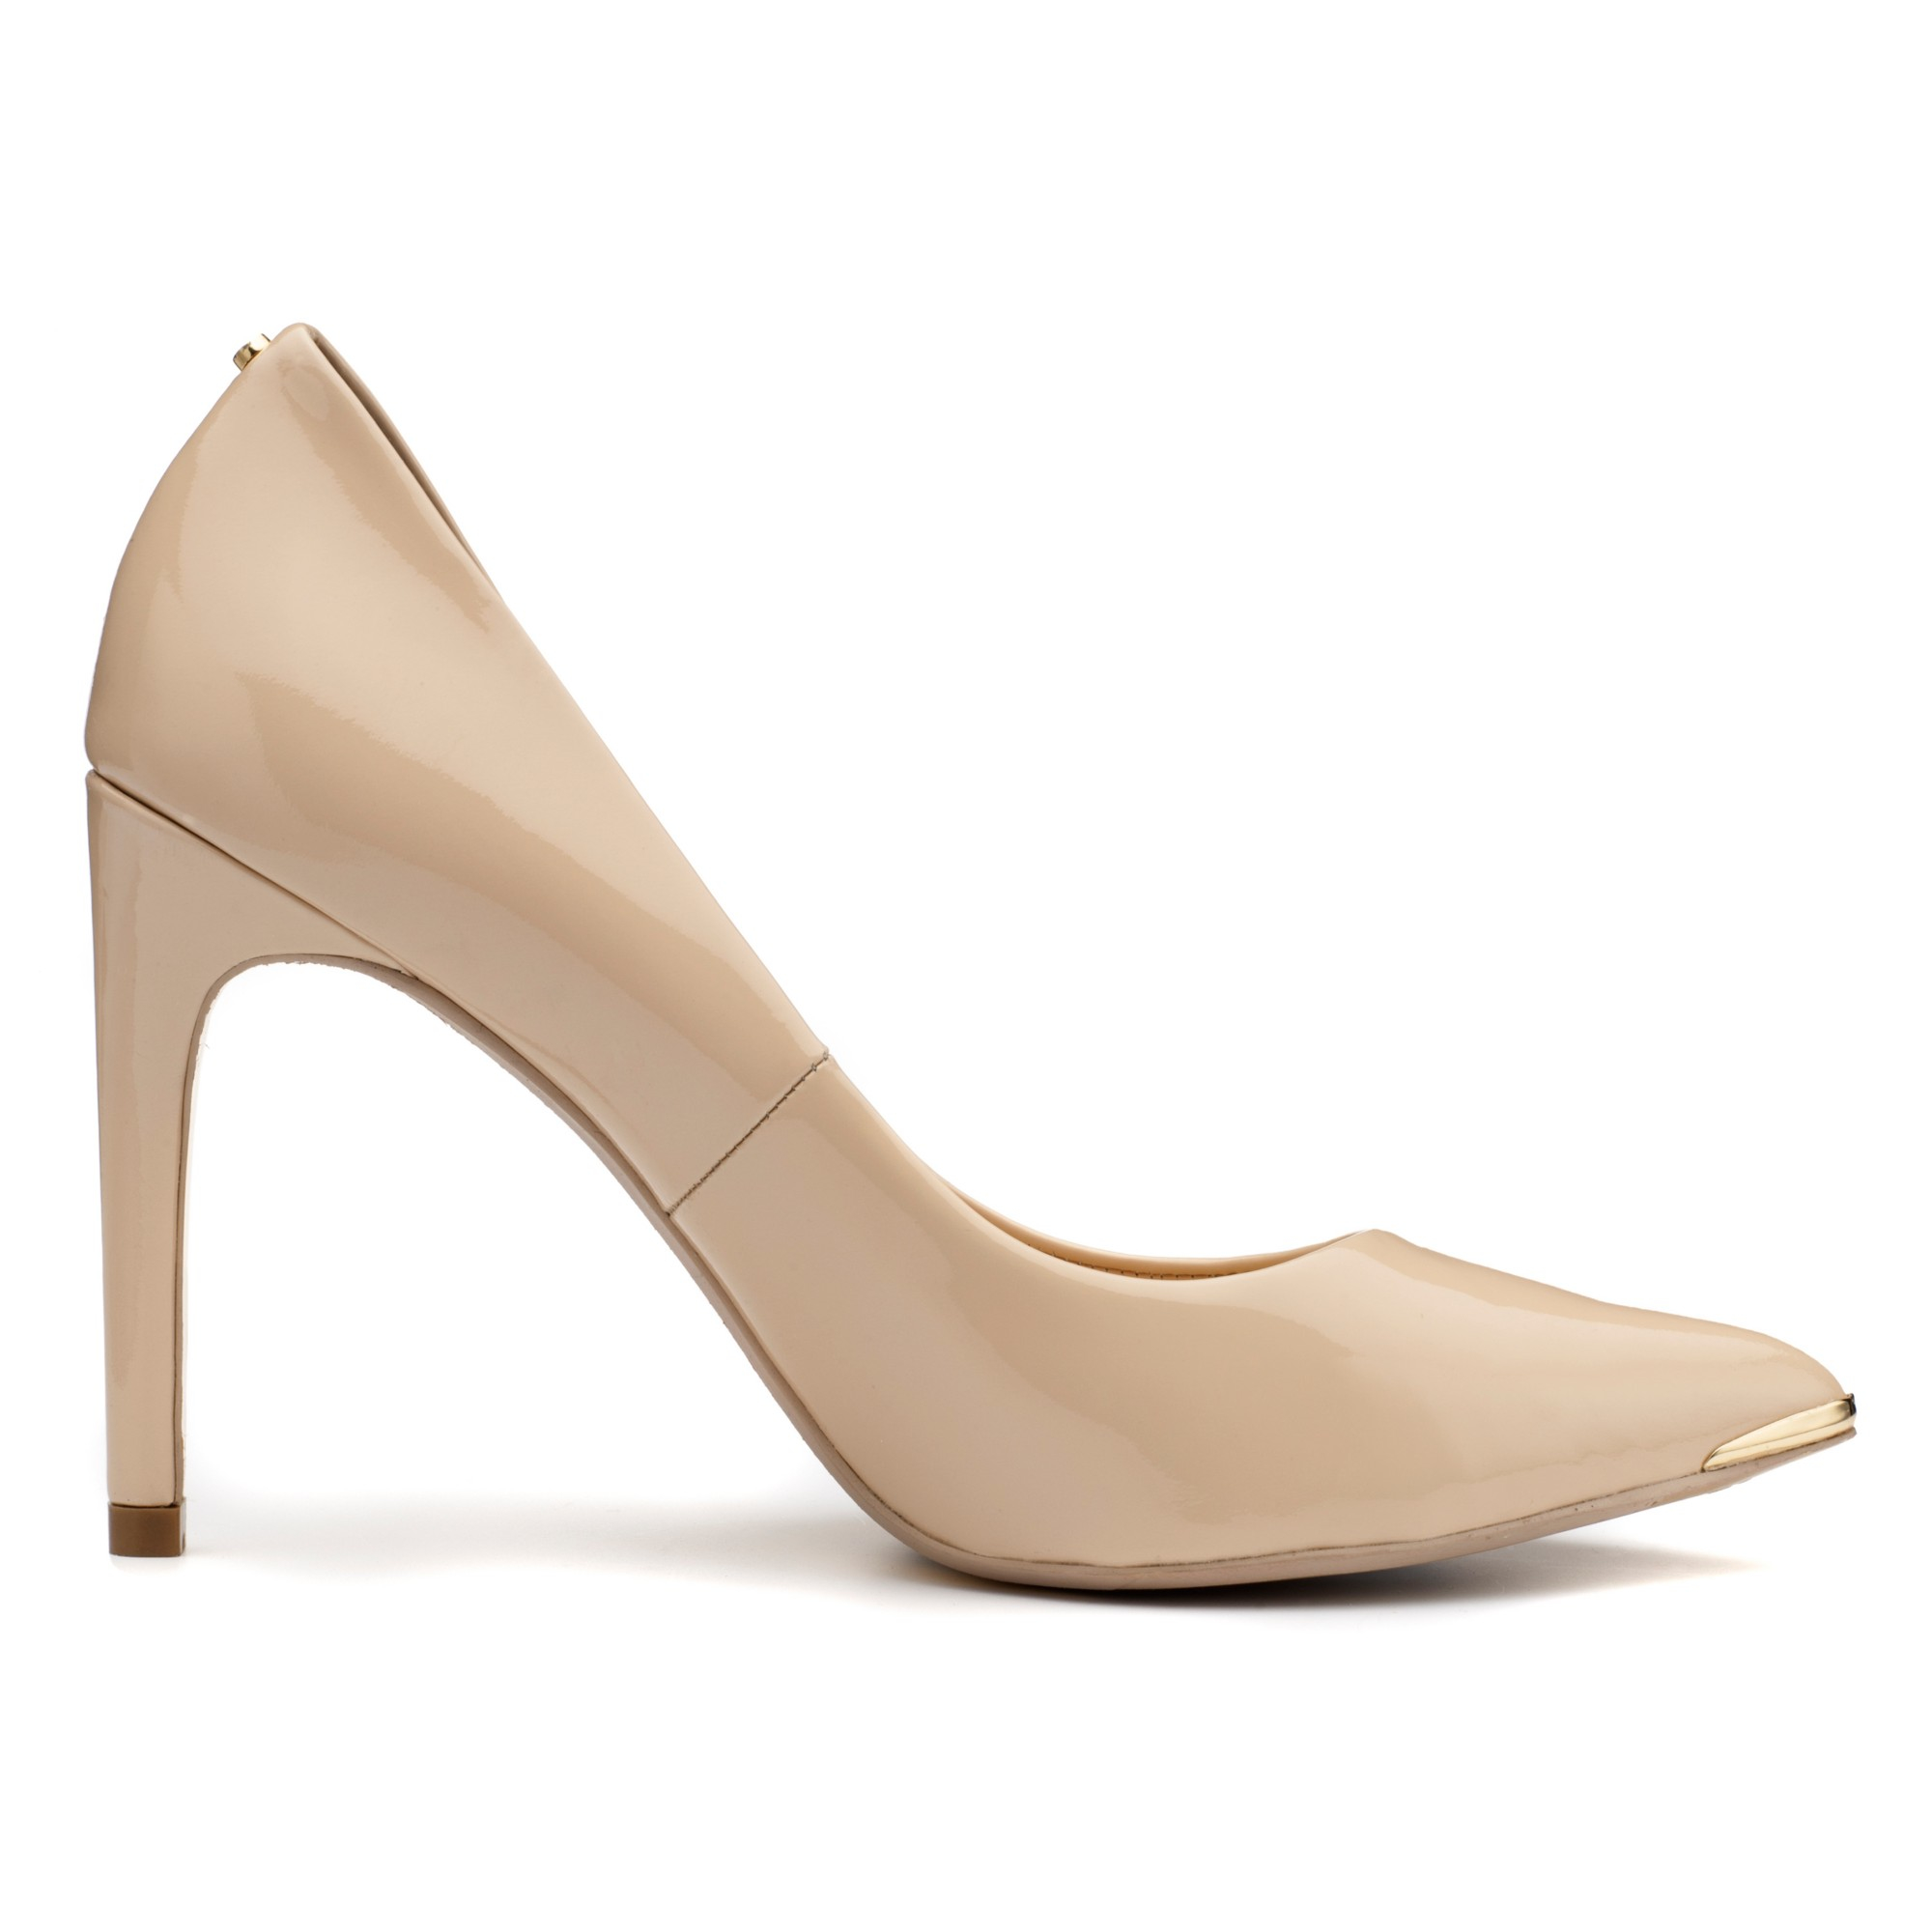 0317f8c5c4 Ted Baker Neevo Pointed Court Shoes in Natural - Lyst